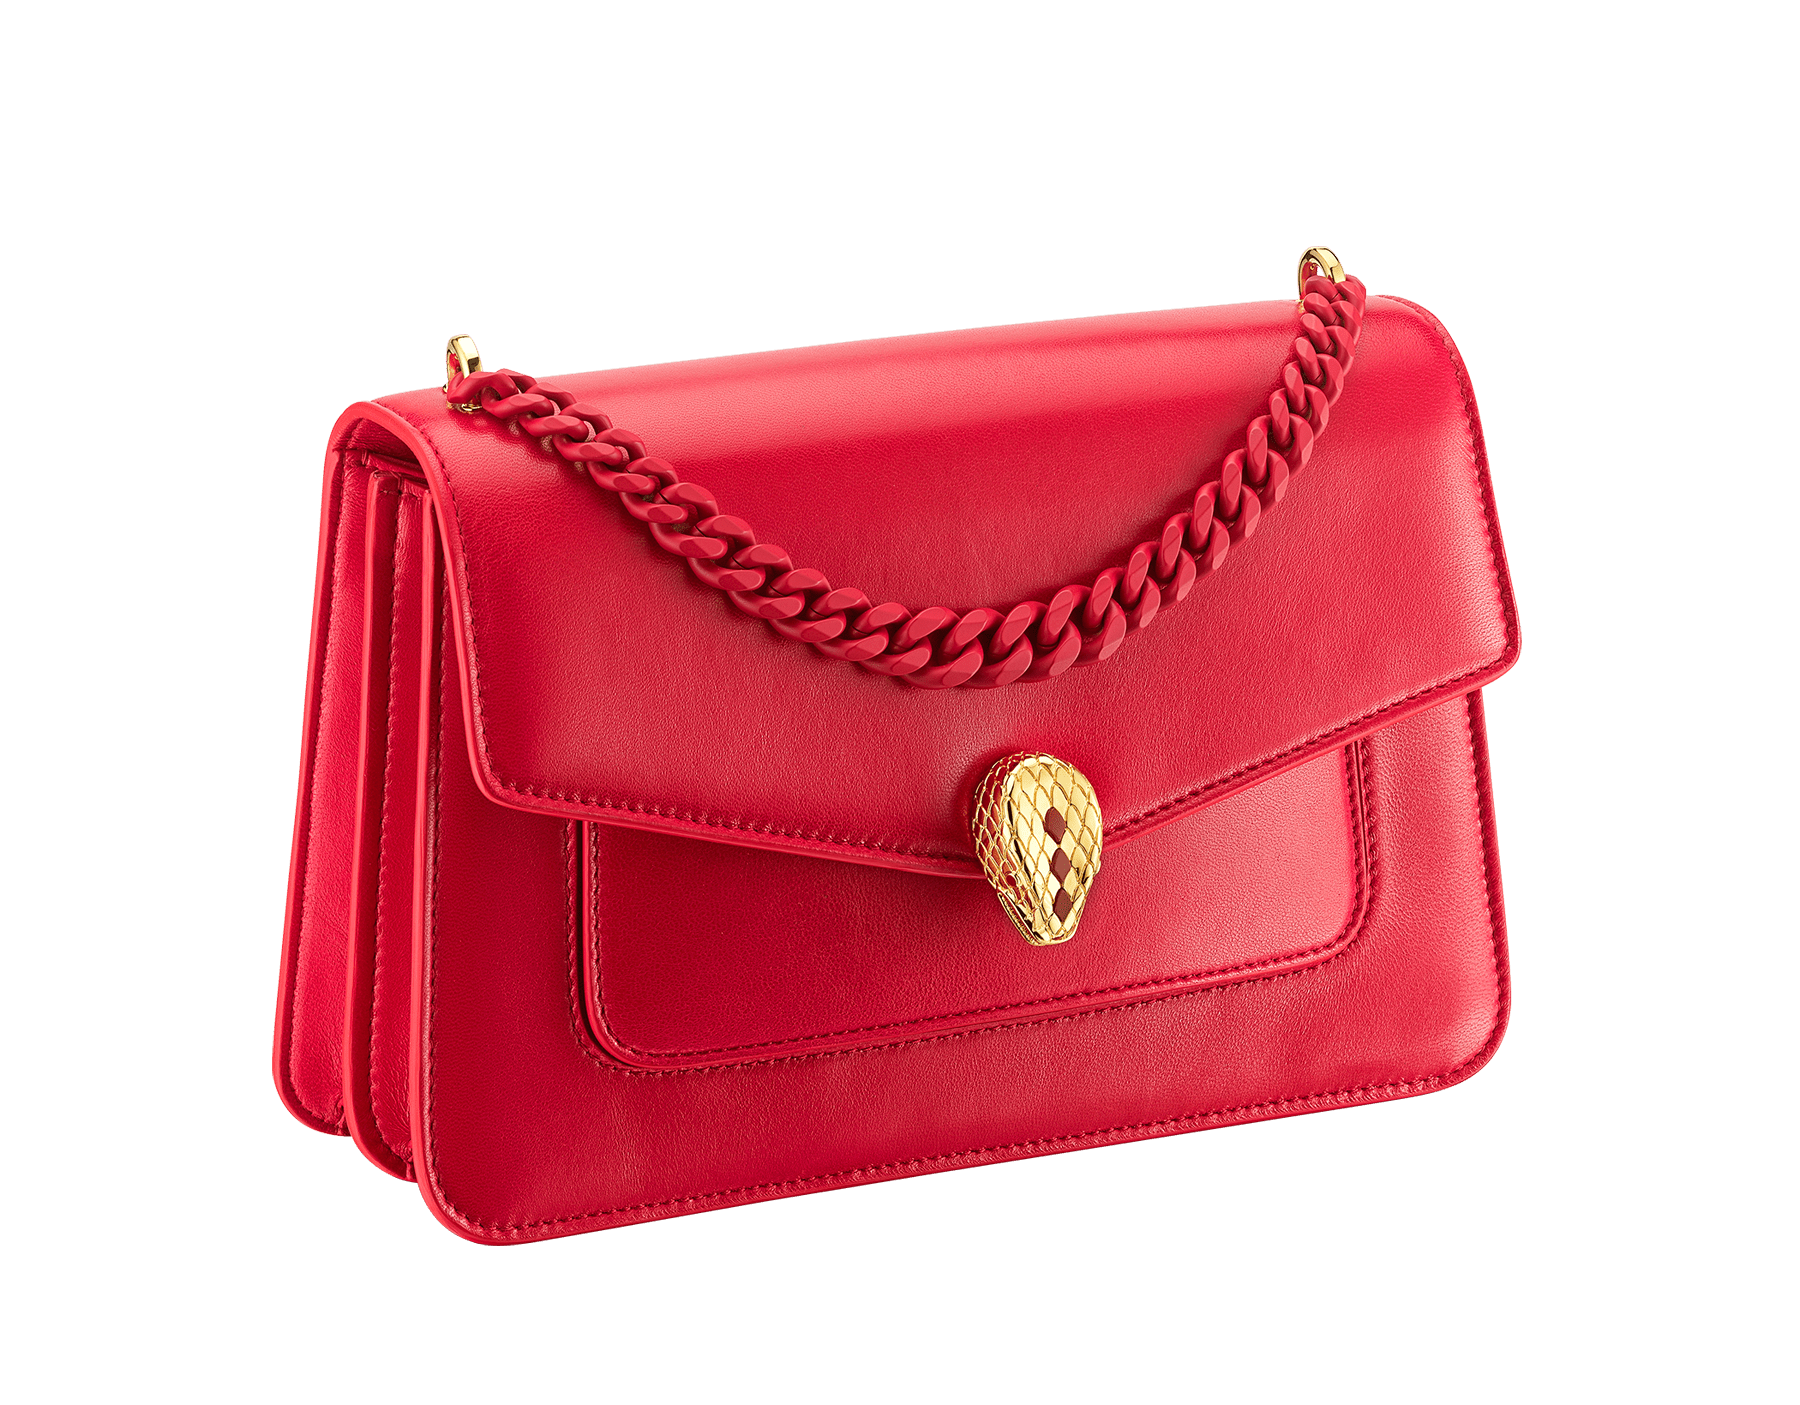 """Serpenti Forever"" maxi chain crossbody bag in Amaranth Garnet red nappa leather, with Pink Spinel fuchsia nappa leather inner lining. New Serpenti head closure in gold-plated brass, finished with small red carnelian scales in the middle and red enamel eyes. 1138-MCN image 2"